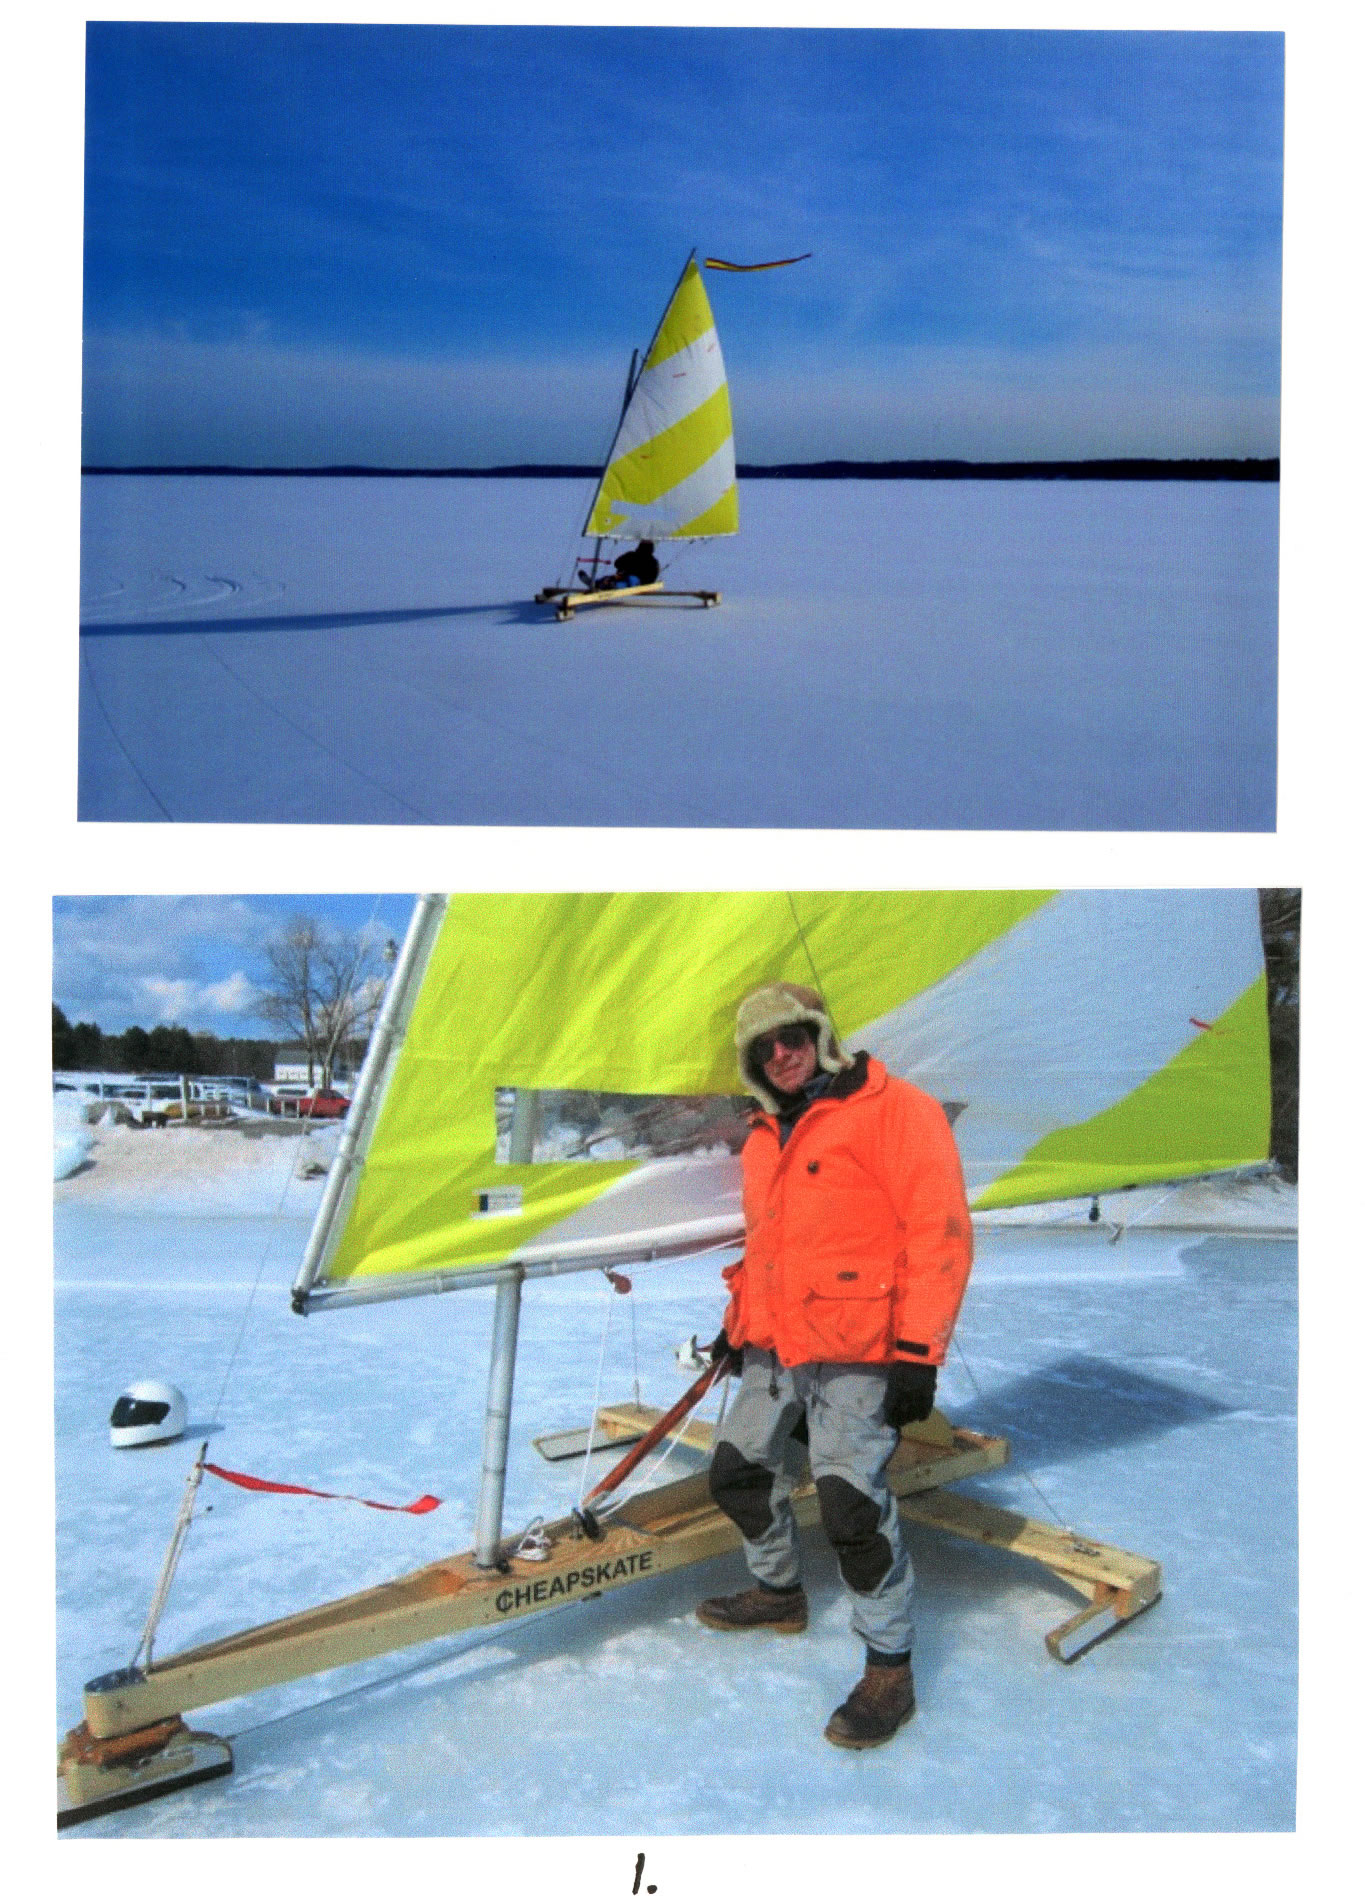 Cheapskate on skeeter ice boat plans